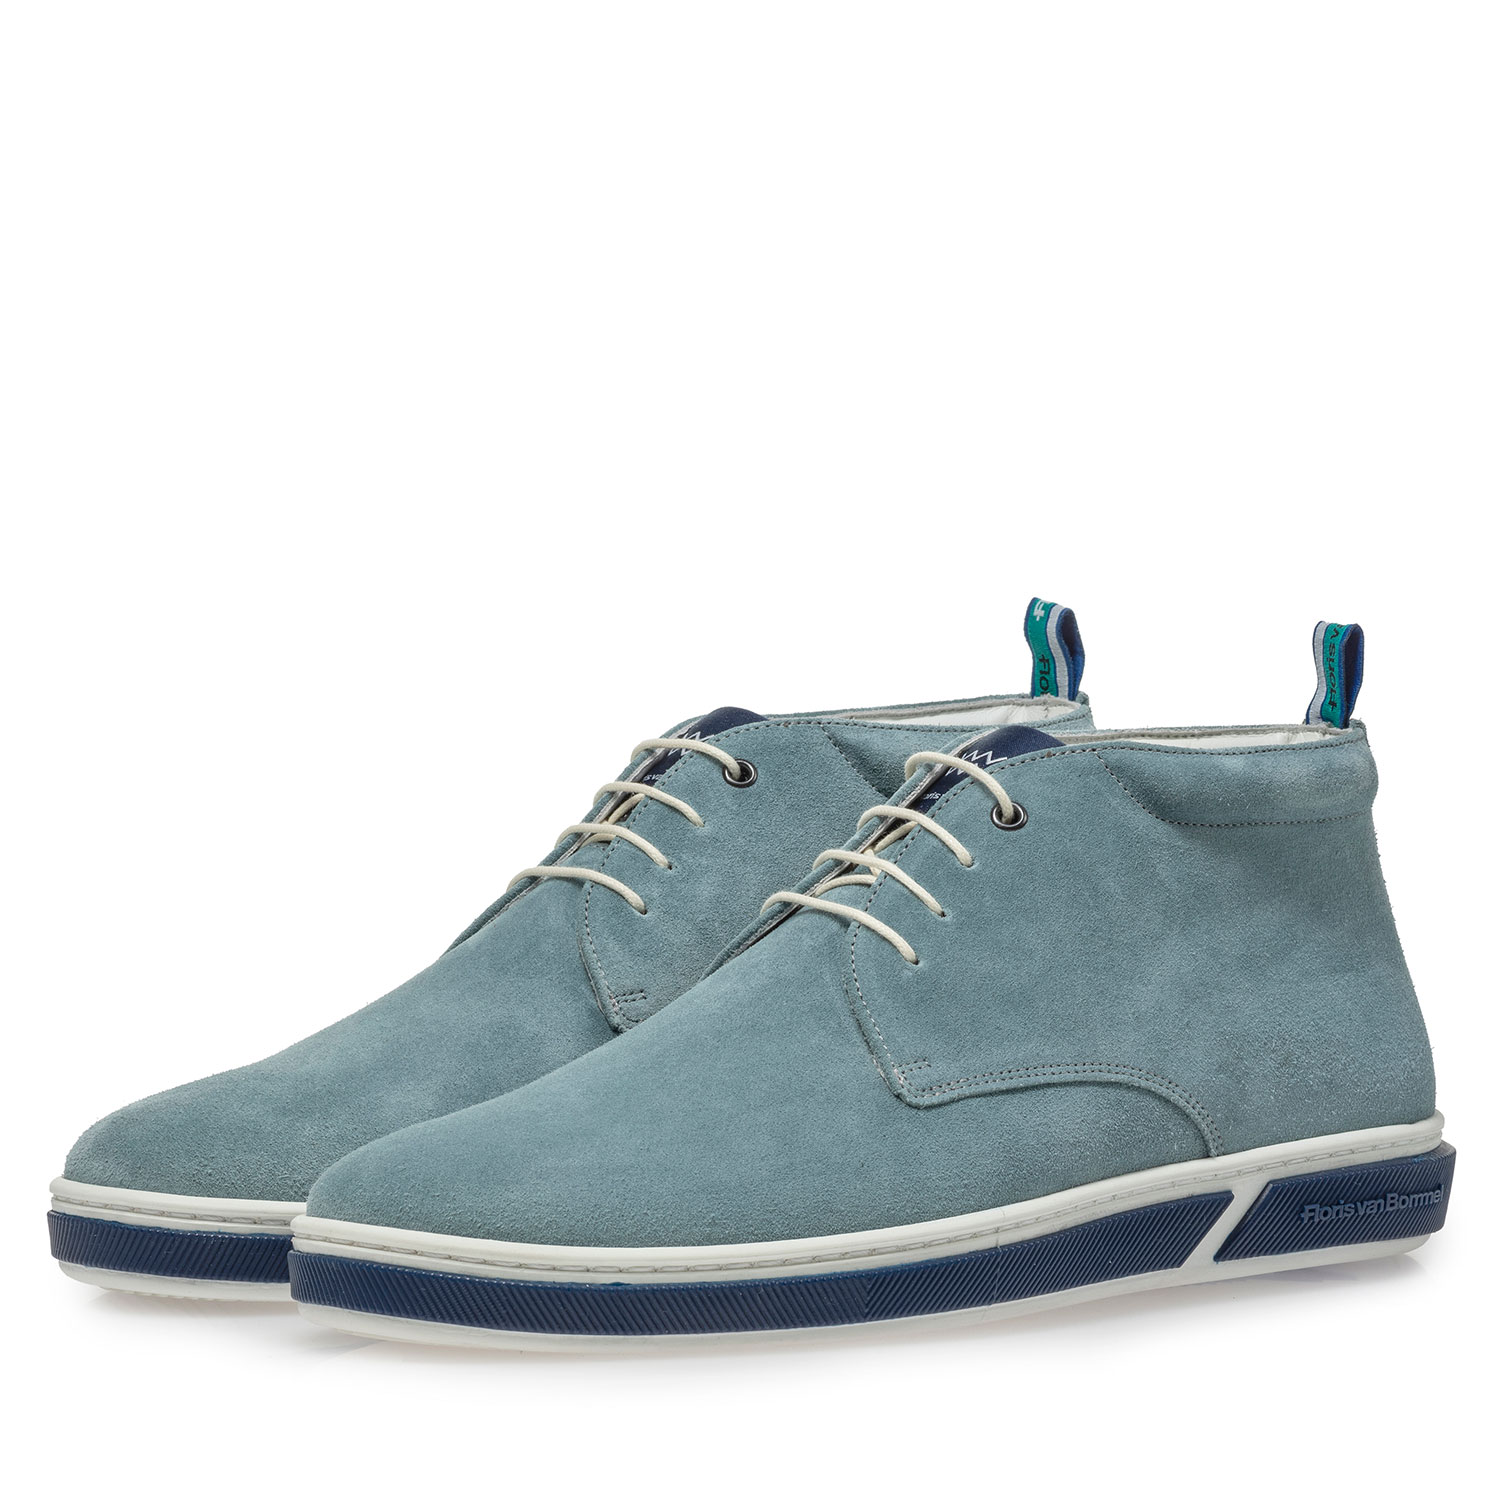 20350/03 - Light blue suede leather lace boot